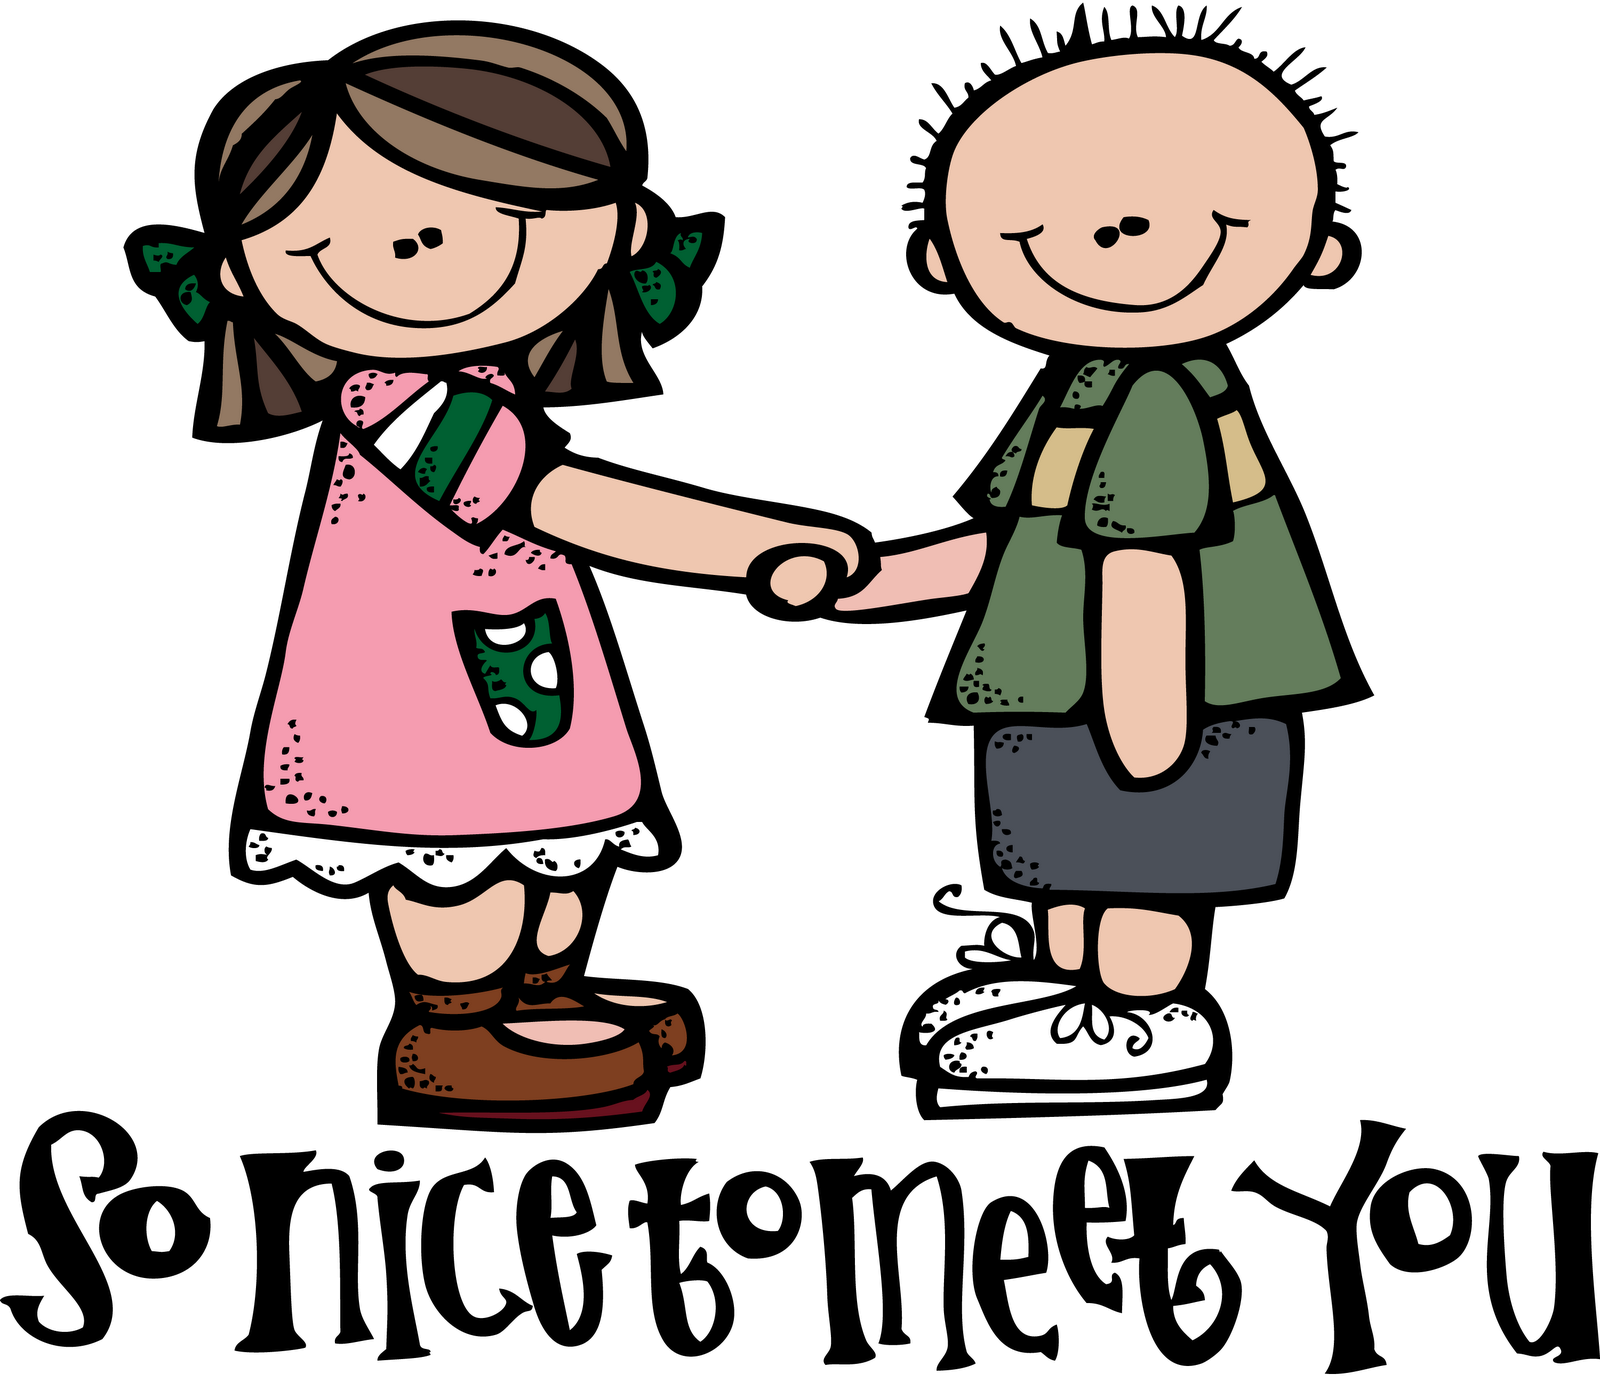 Hello clipart meeting friend. Transparent free collection of